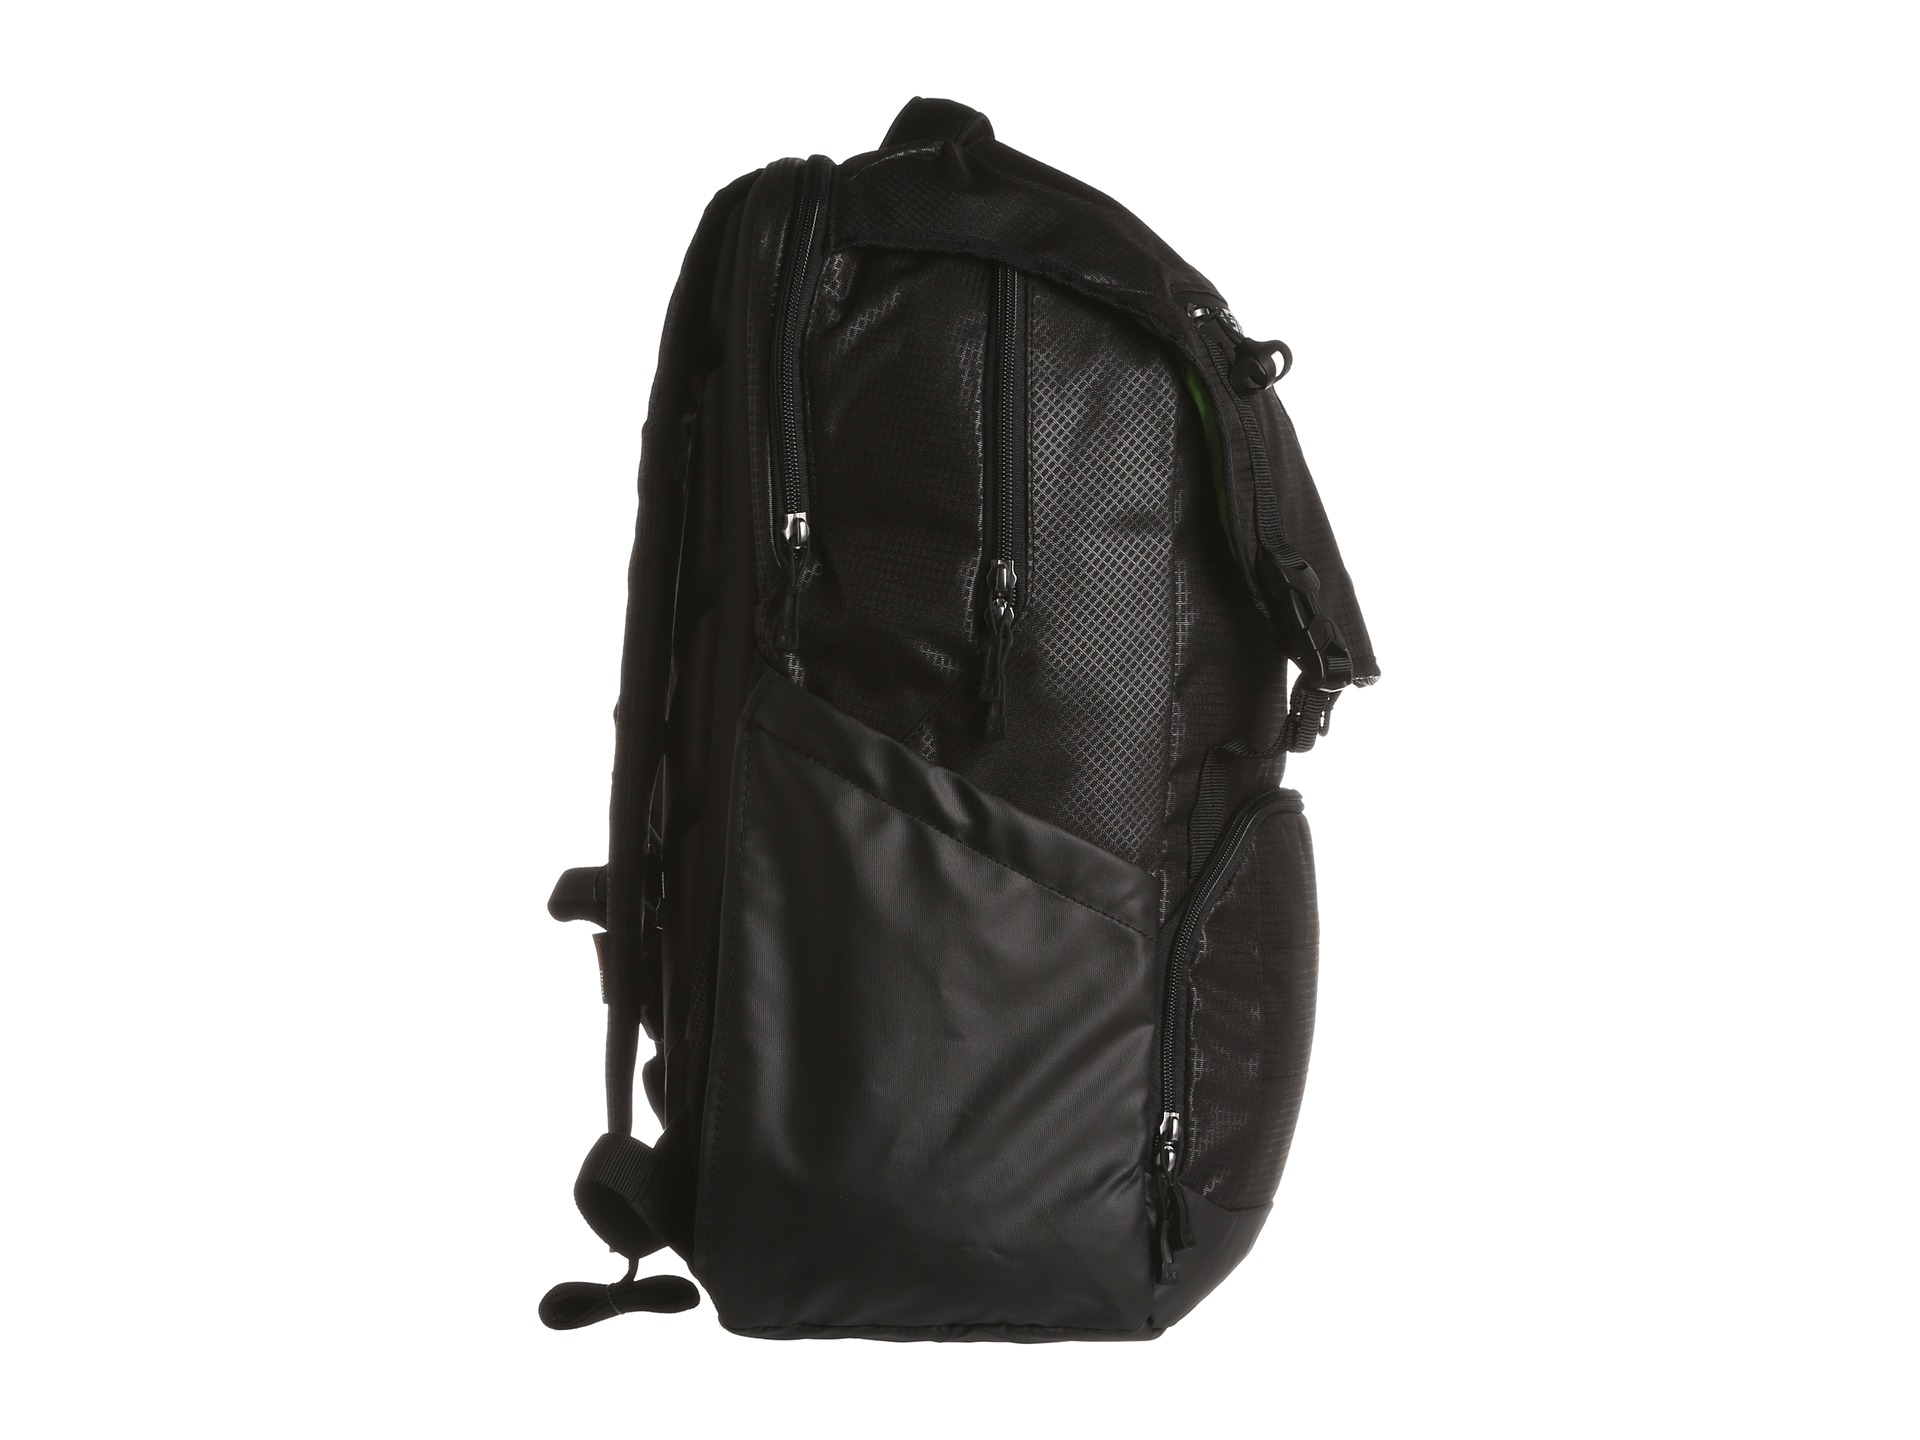 974525f66e Lyst - Under Armour Ua Ruckus Backpack in Black for Men